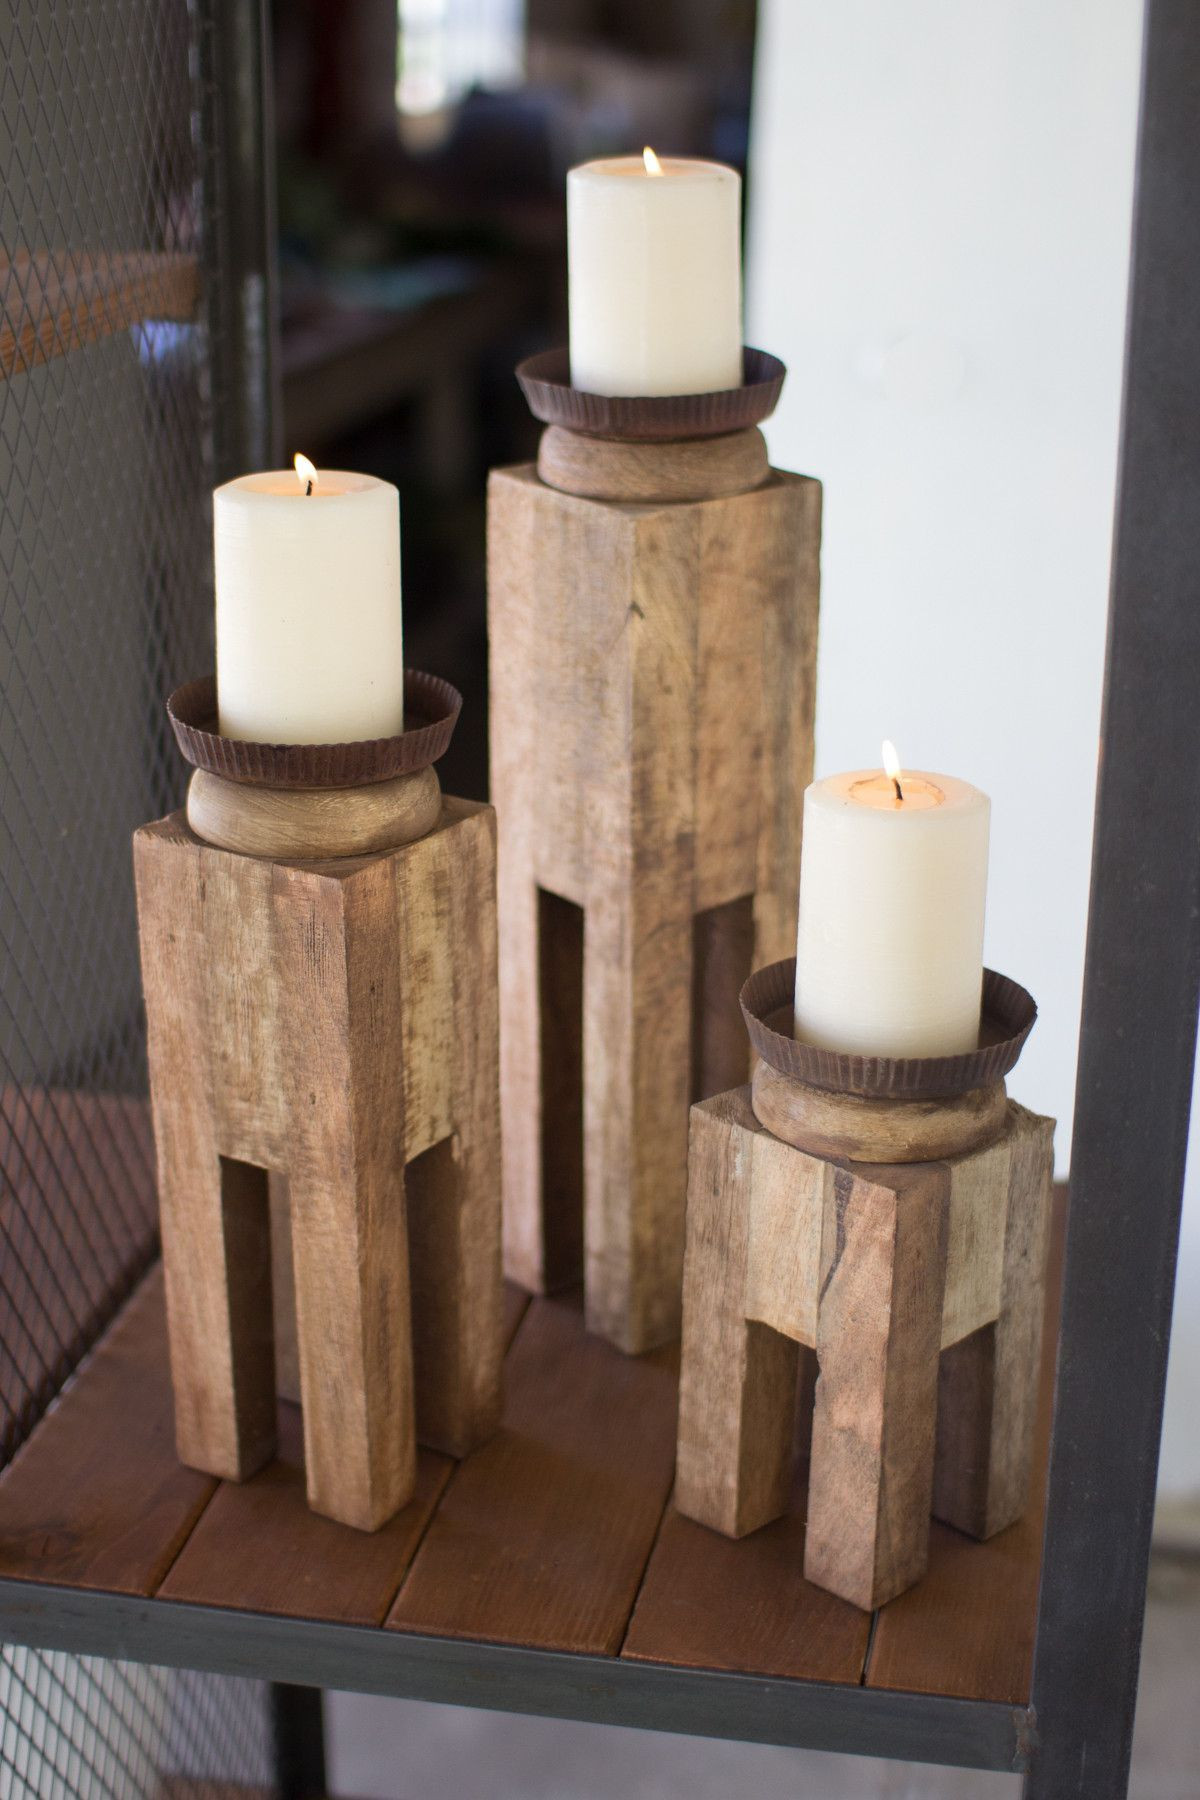 The Kalalou Square Recycled Wood Candle Holders Are Unique Candle Holders To Candelabros De Madera Muebles Hechos Con Palets Portavelas